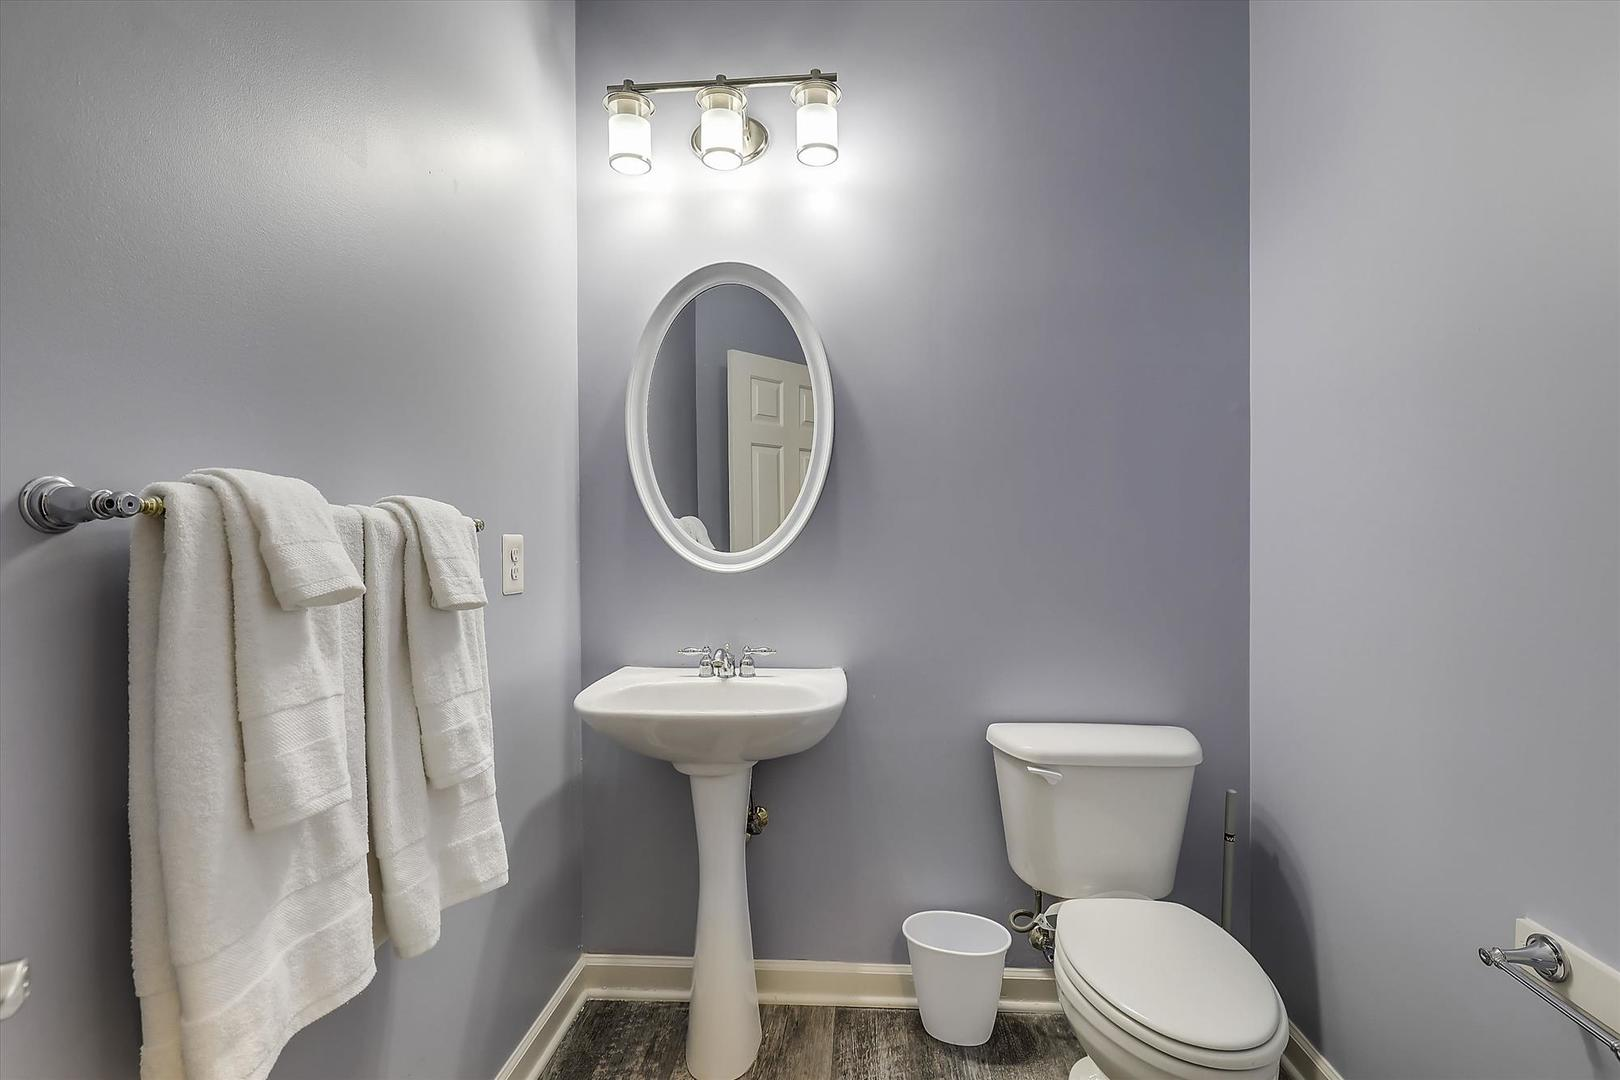 28 Seaside Dr. - Powder Room